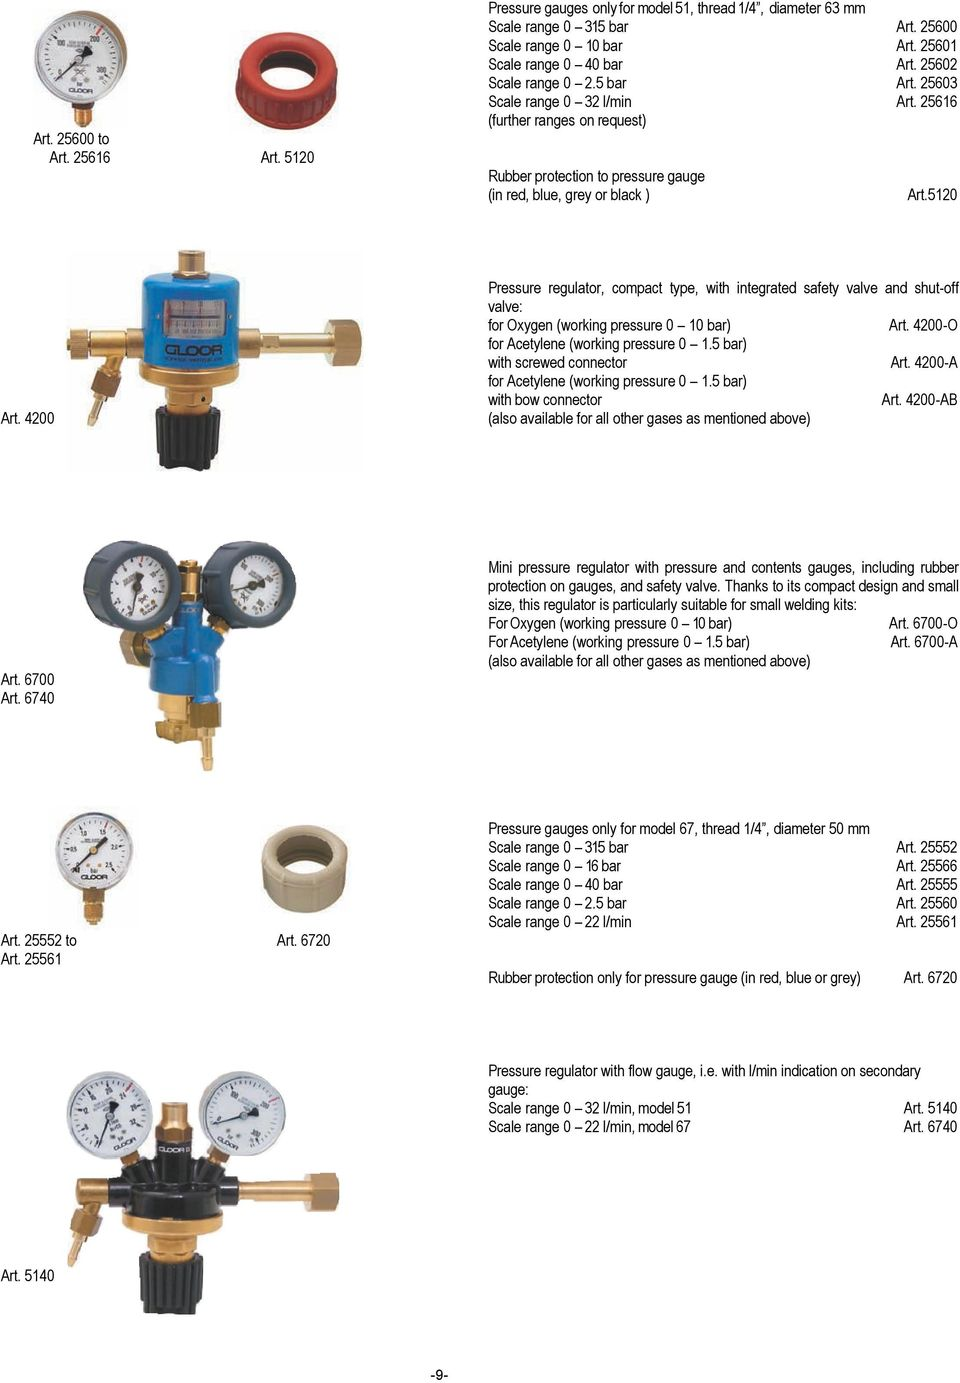 Welding And Cutting Torches Light Version Page 2 Standard Pressure Regulator For Machine Gas Circuit Control Buy 5120 Compact Type With Integrated Safety Valve Shut Off